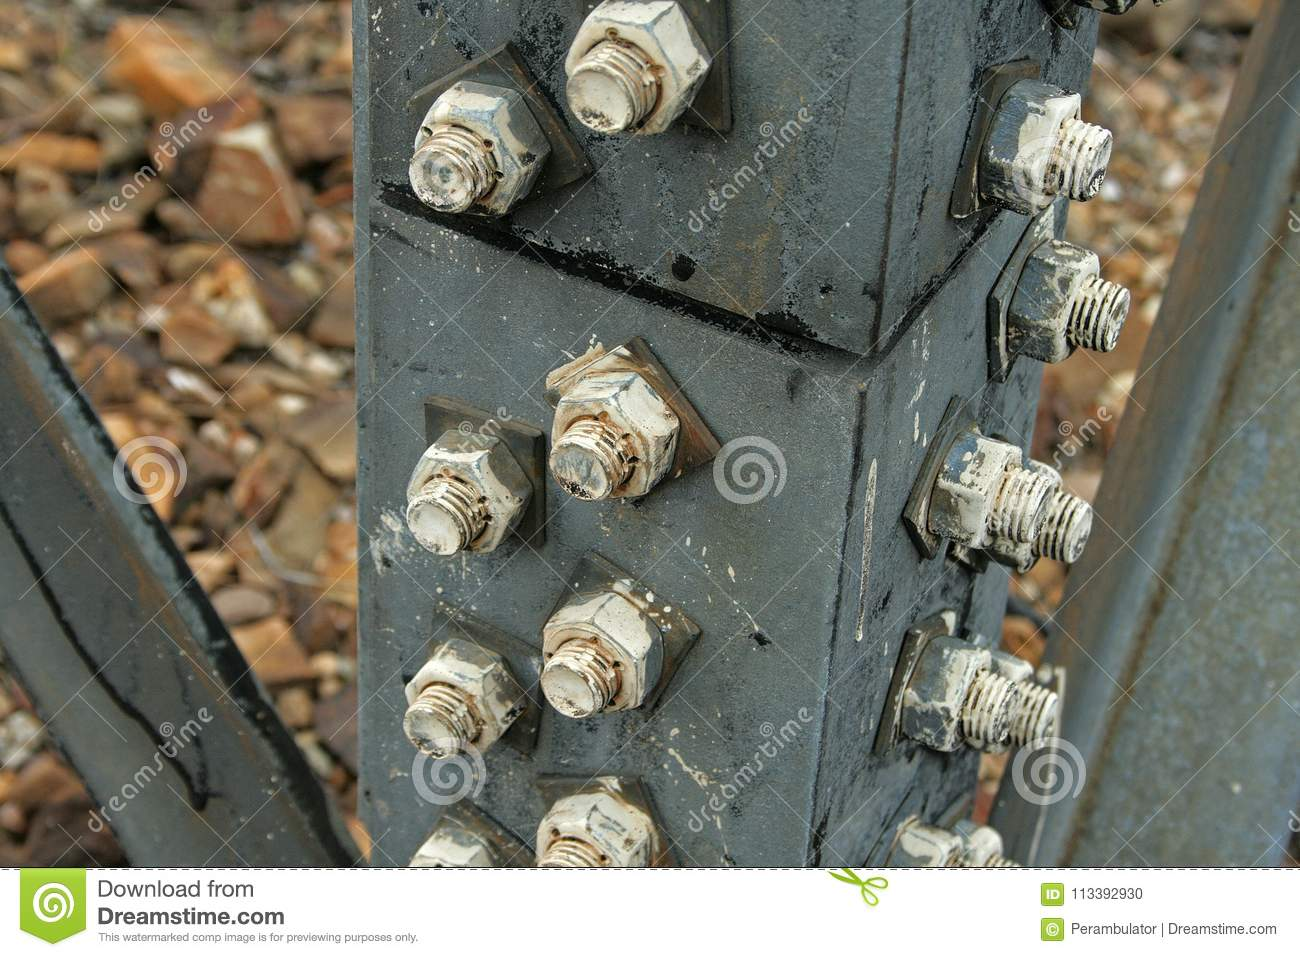 BOLTS IN STRUT OF ELECTRICAL PYLON